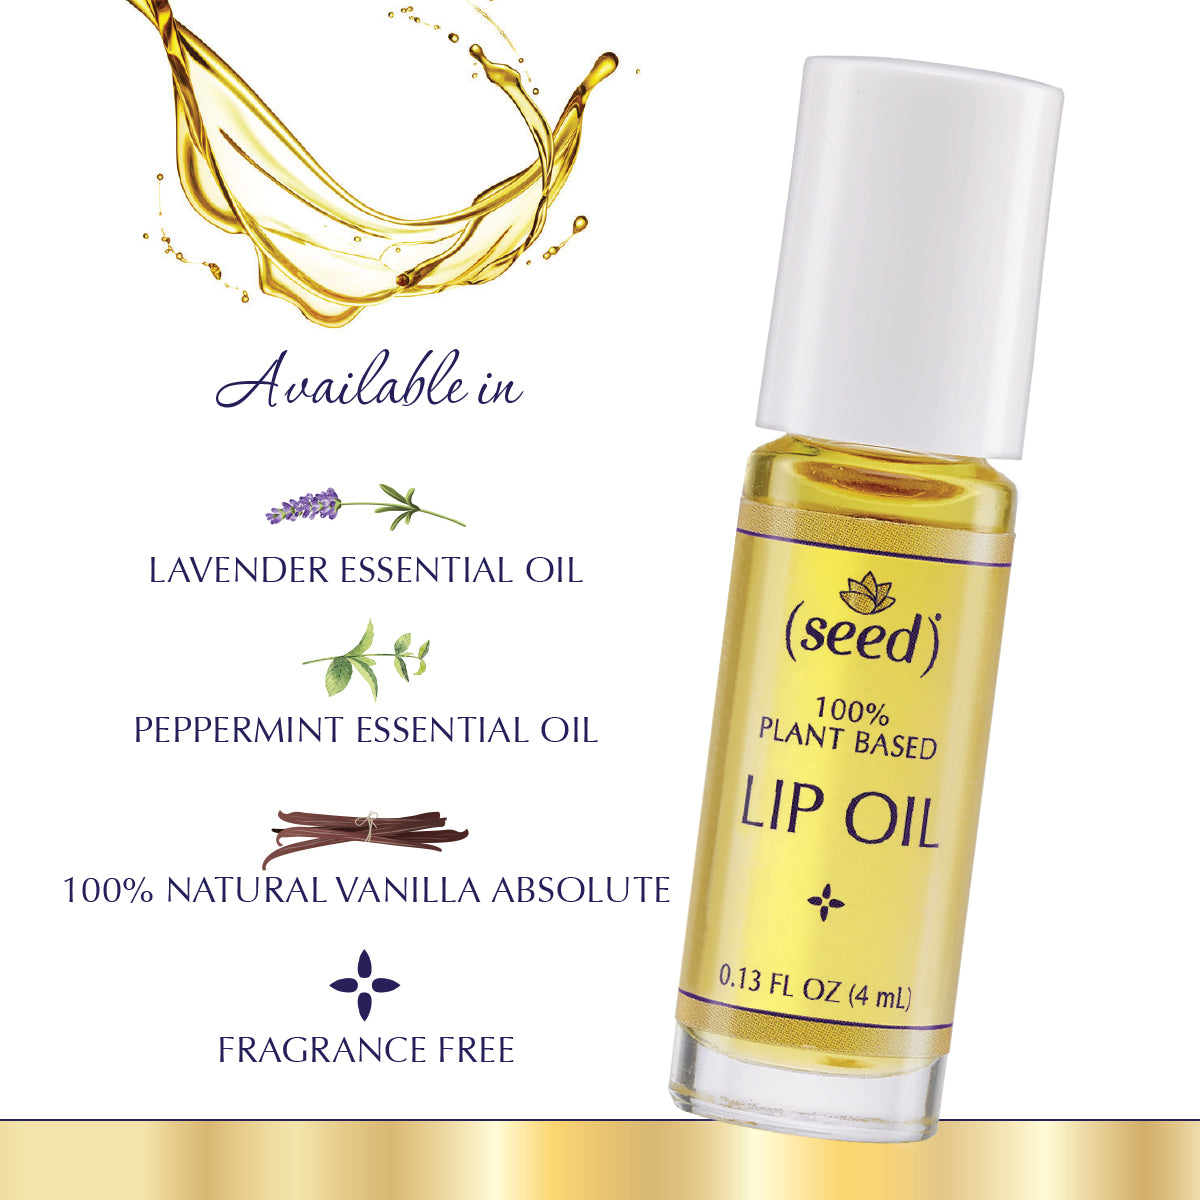 Seed Lip Oil available in Fragrance Free, Lavender, Peppermint, and Vanilla